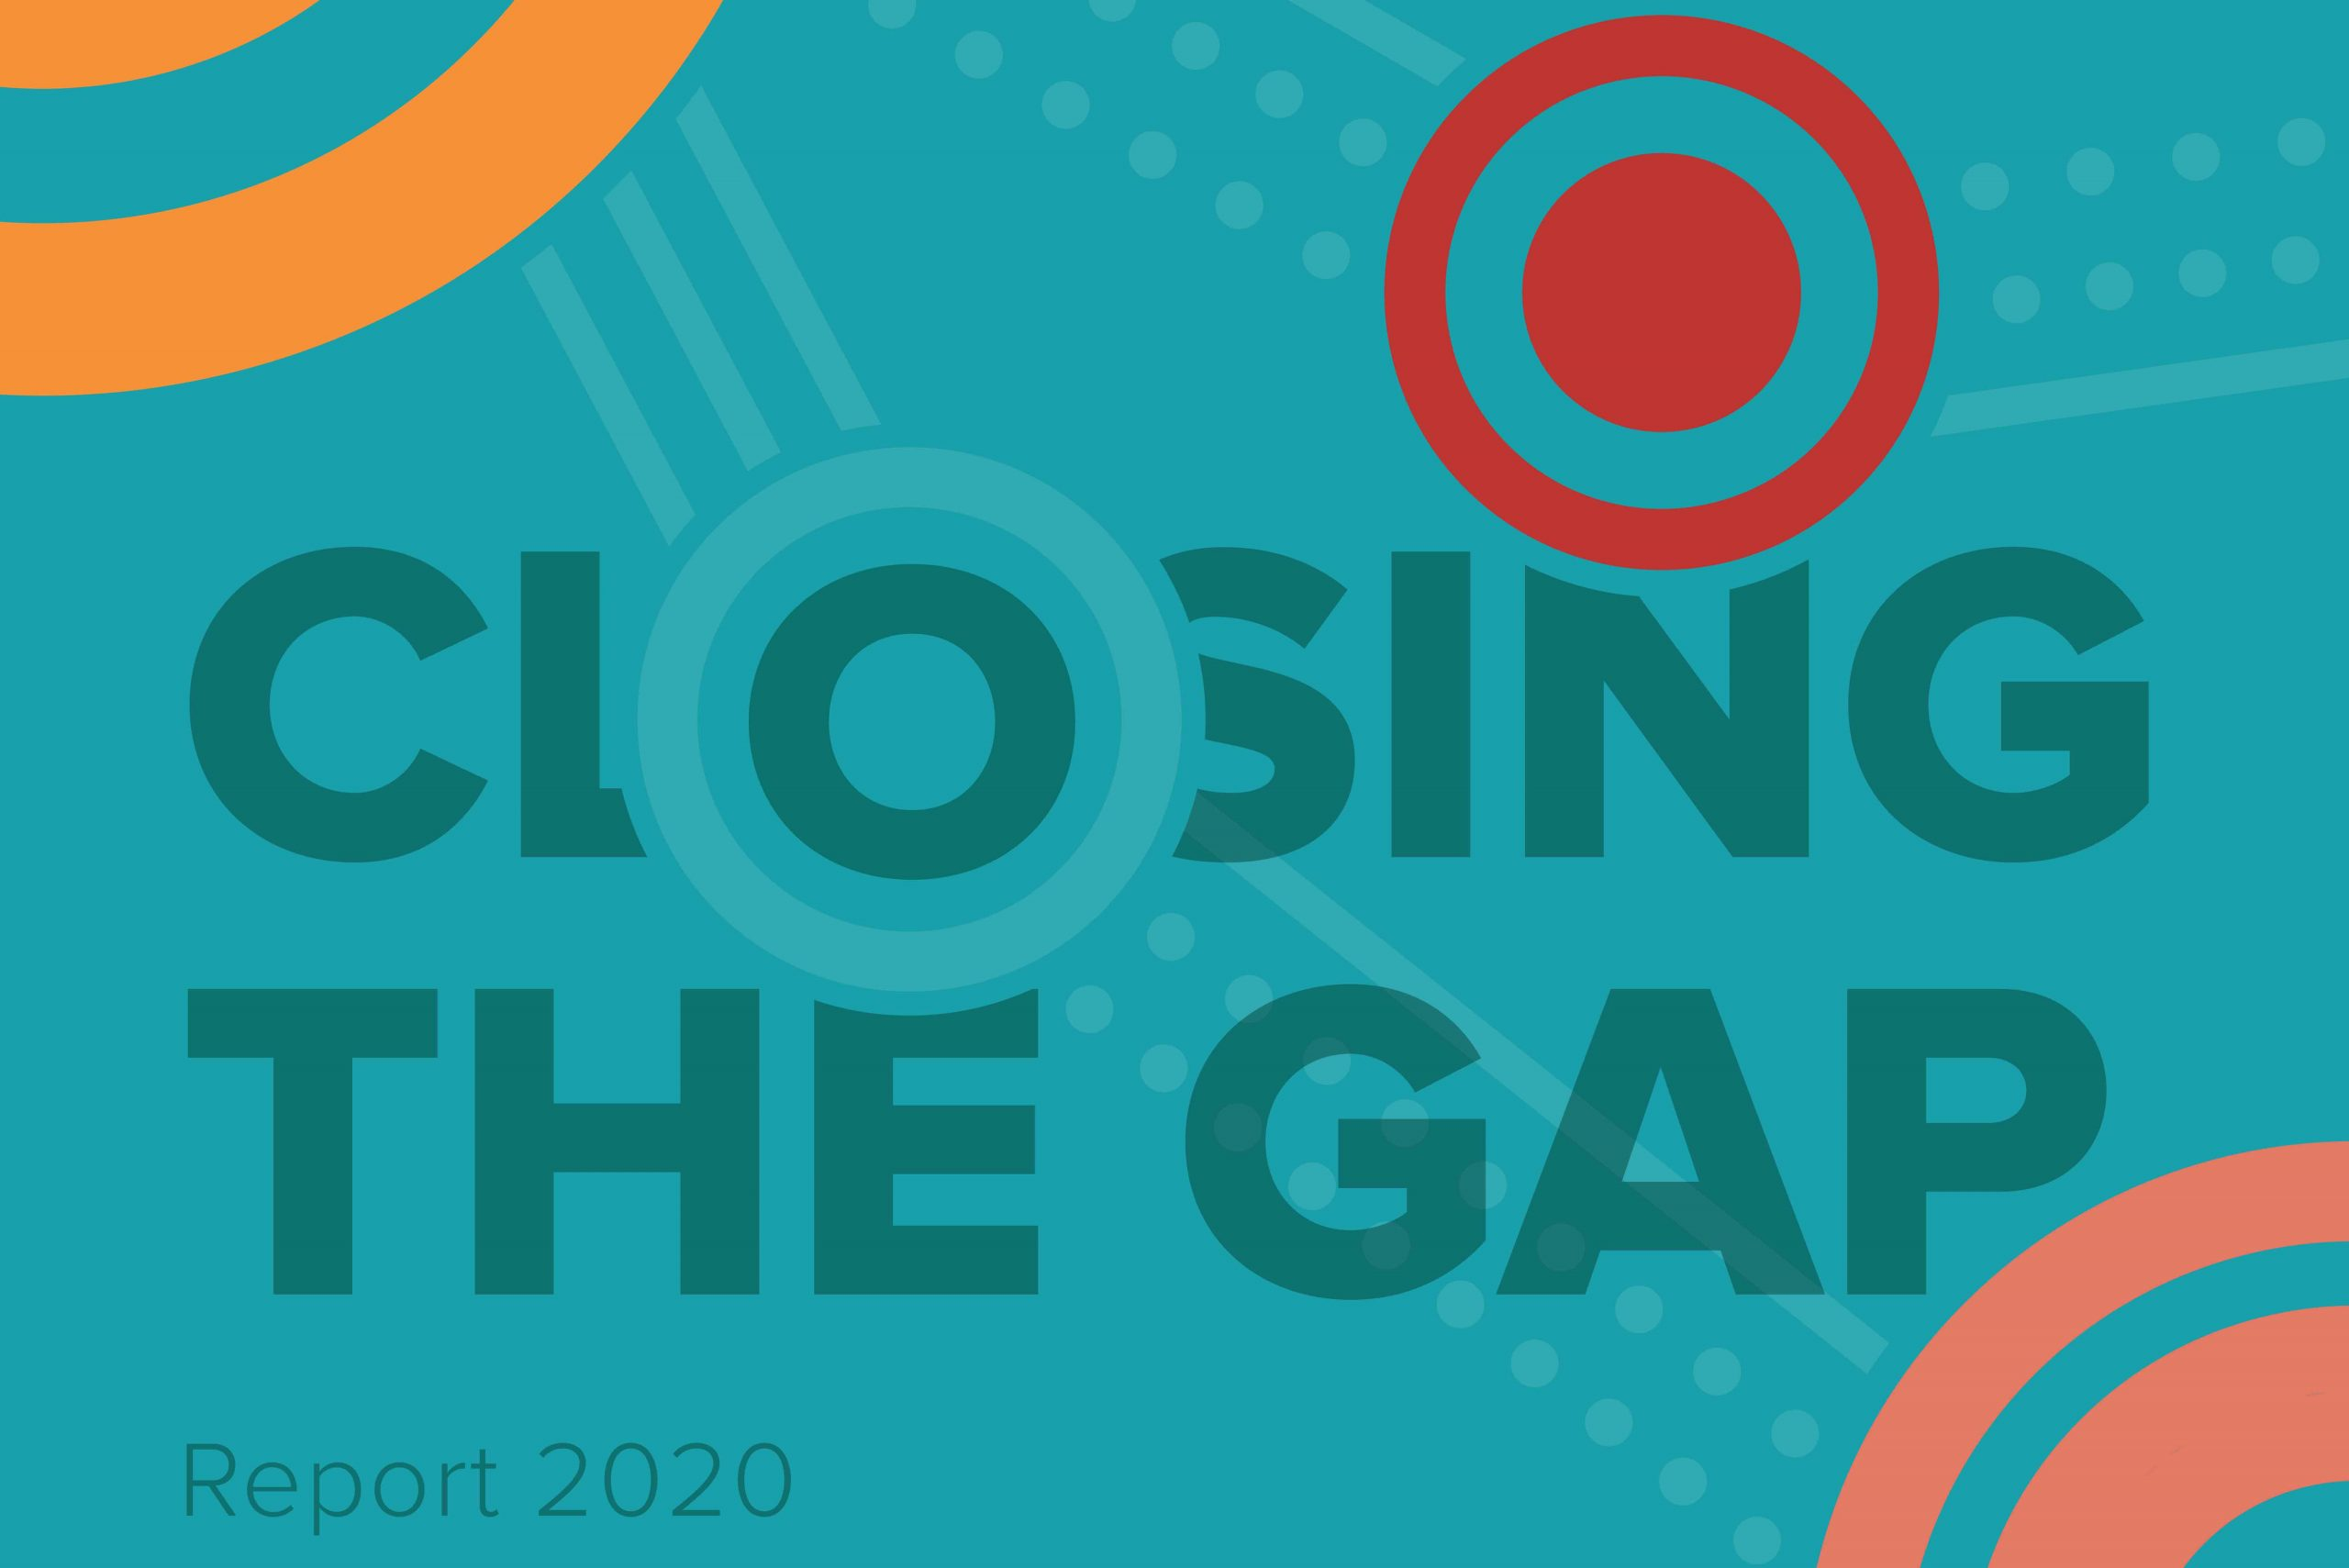 Blue background. Text says Closing the Gap Report 2020